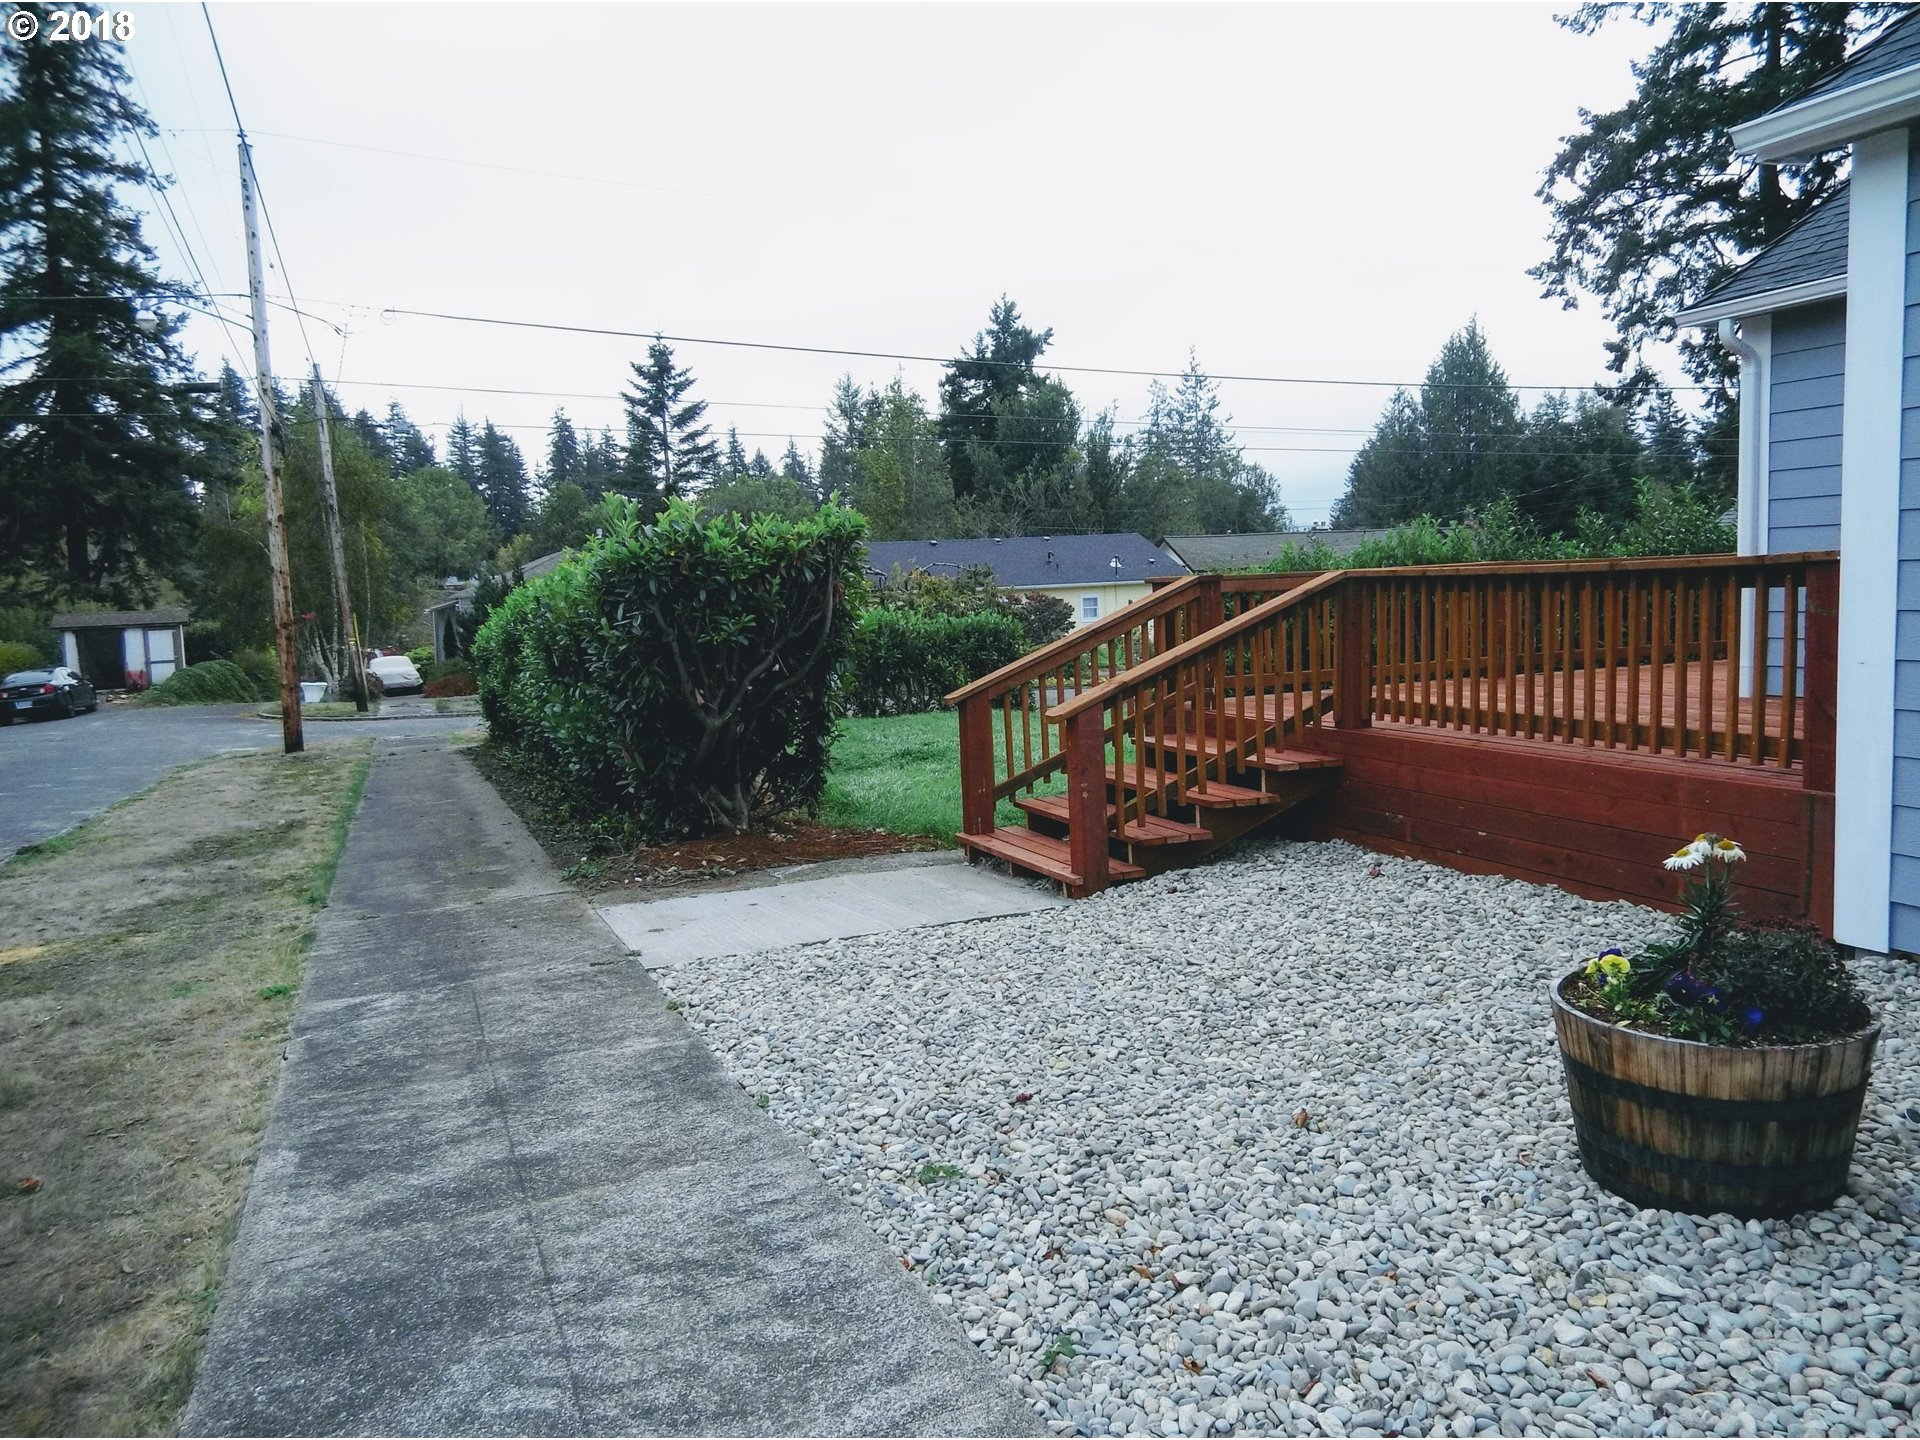 125 N HENRY Coquille, OR 97423 - MLS #: 18612074